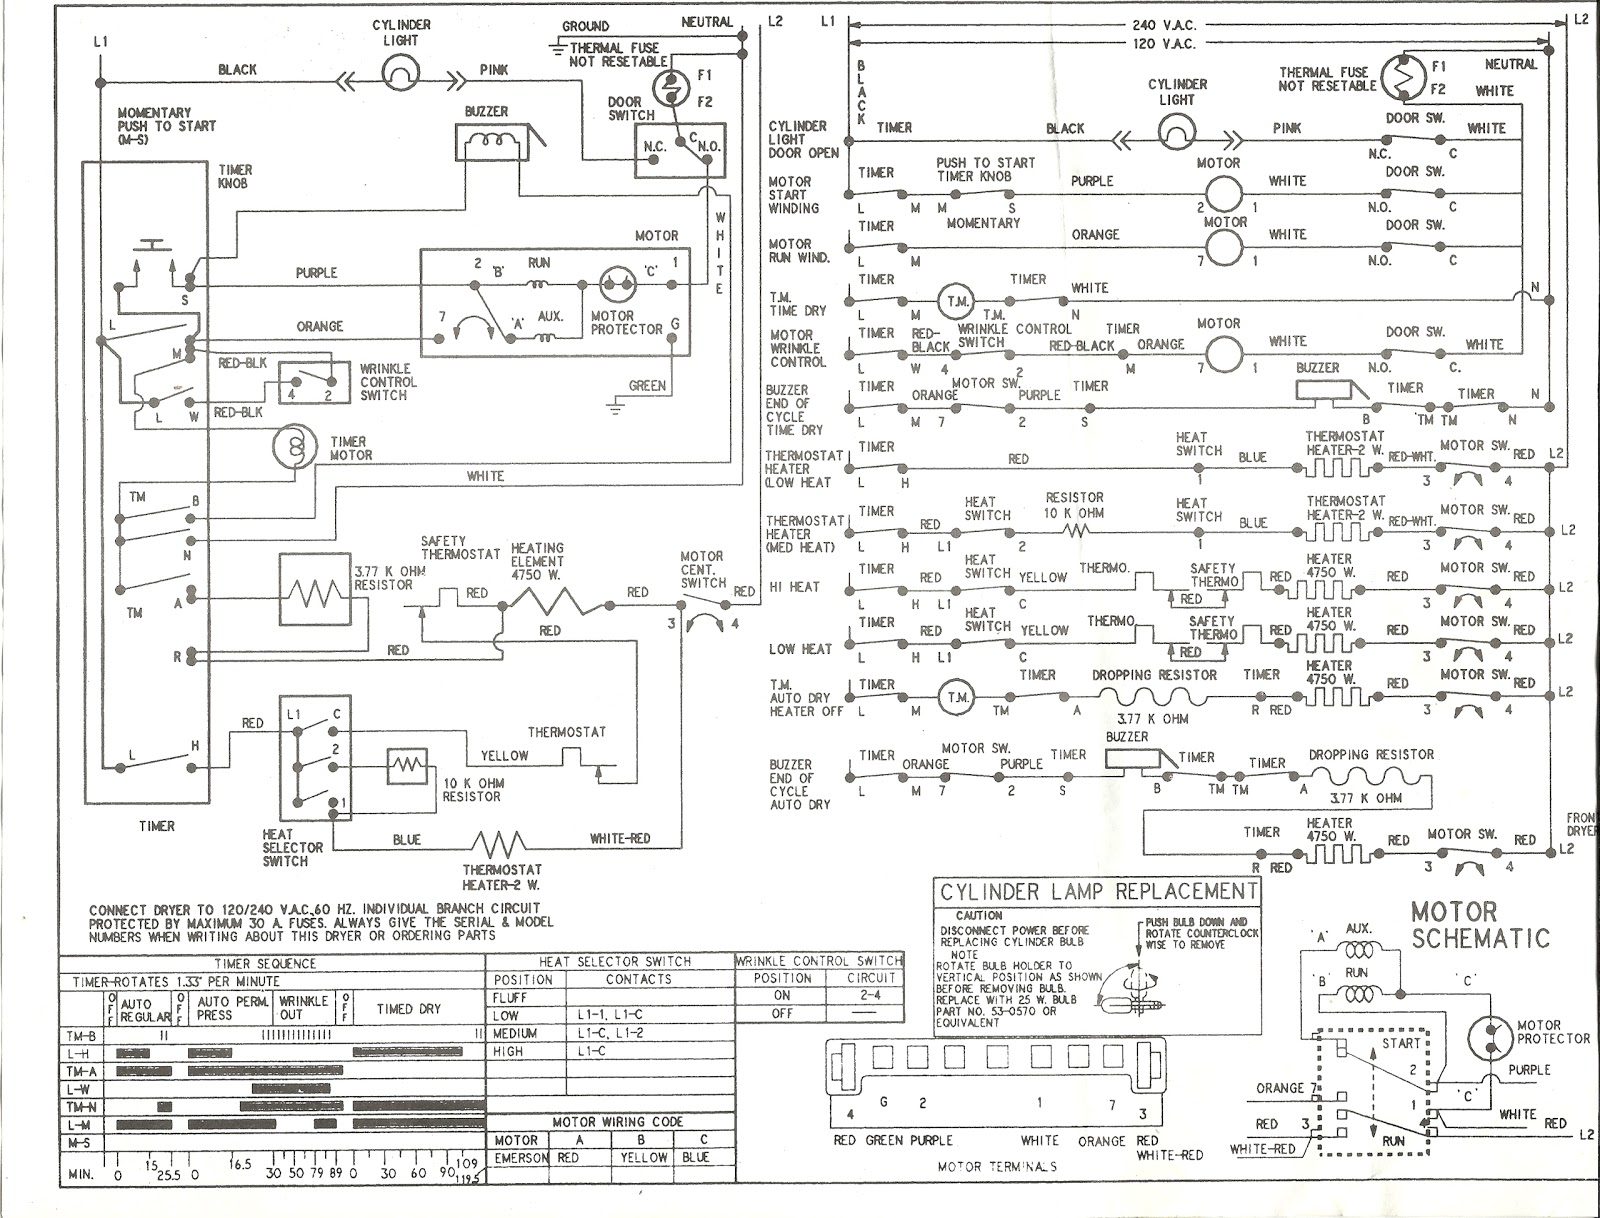 Wiring Diagram For Electric Clothes Dryer